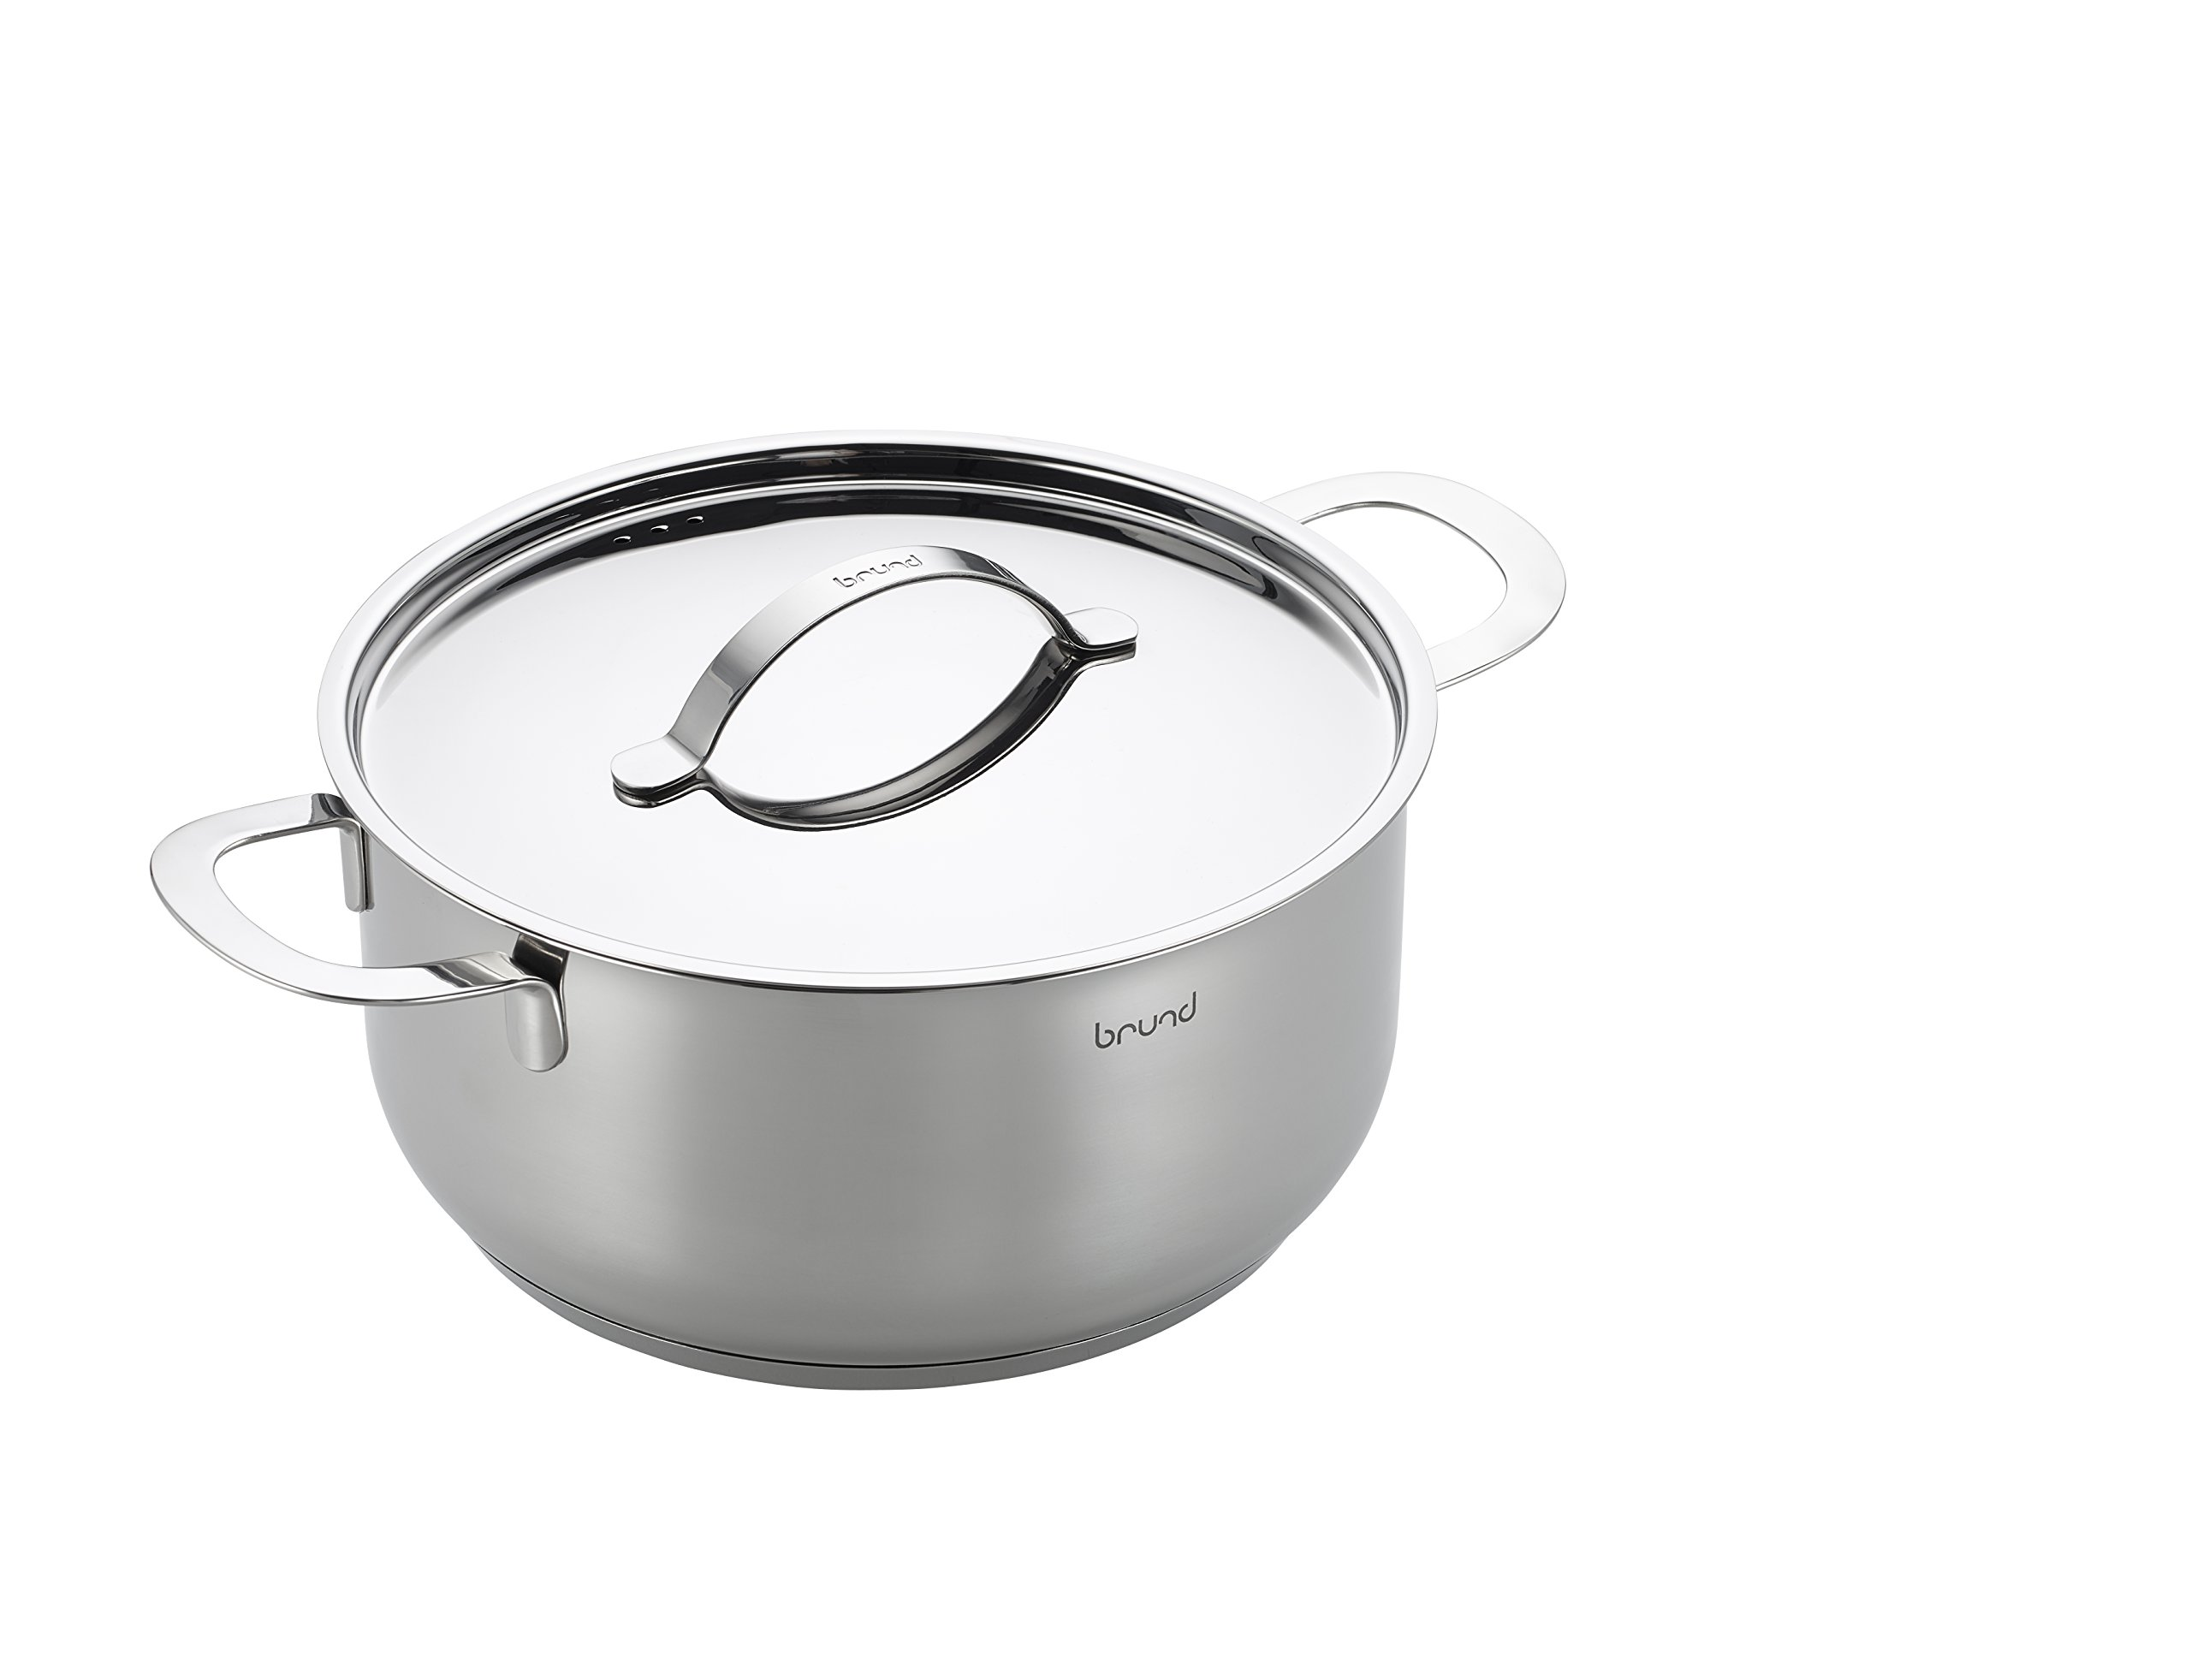 Brund Energy Dutch Oven, 5 Quart, Stainless Steel